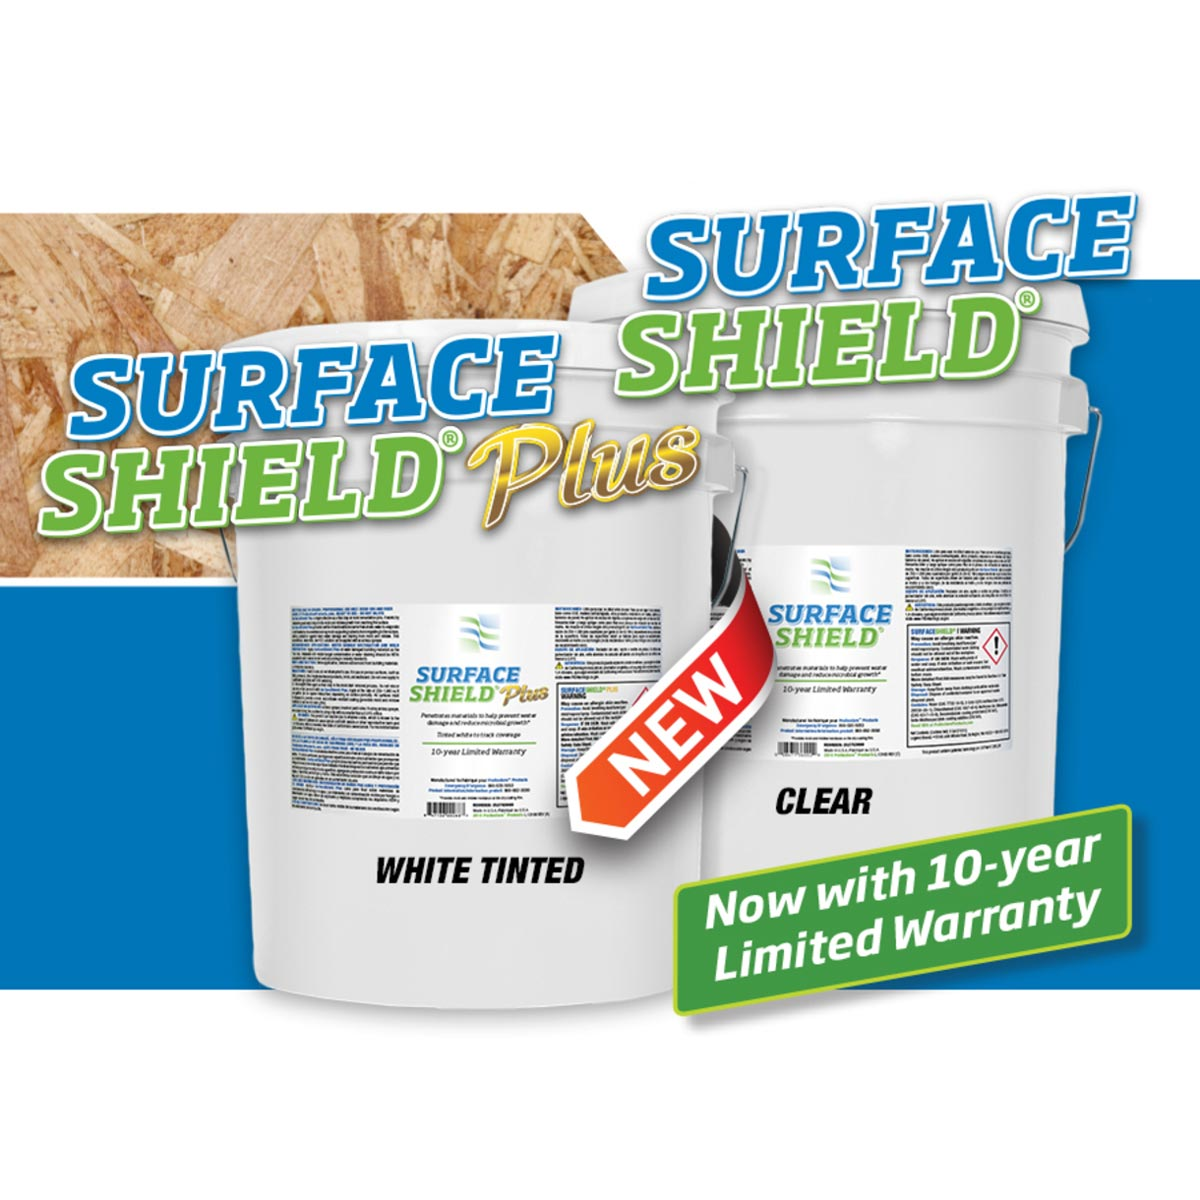 Chemspec Prorestore OdorX 252763000 Surface Shield 5 Gallon Pail Unsmoke White Tint